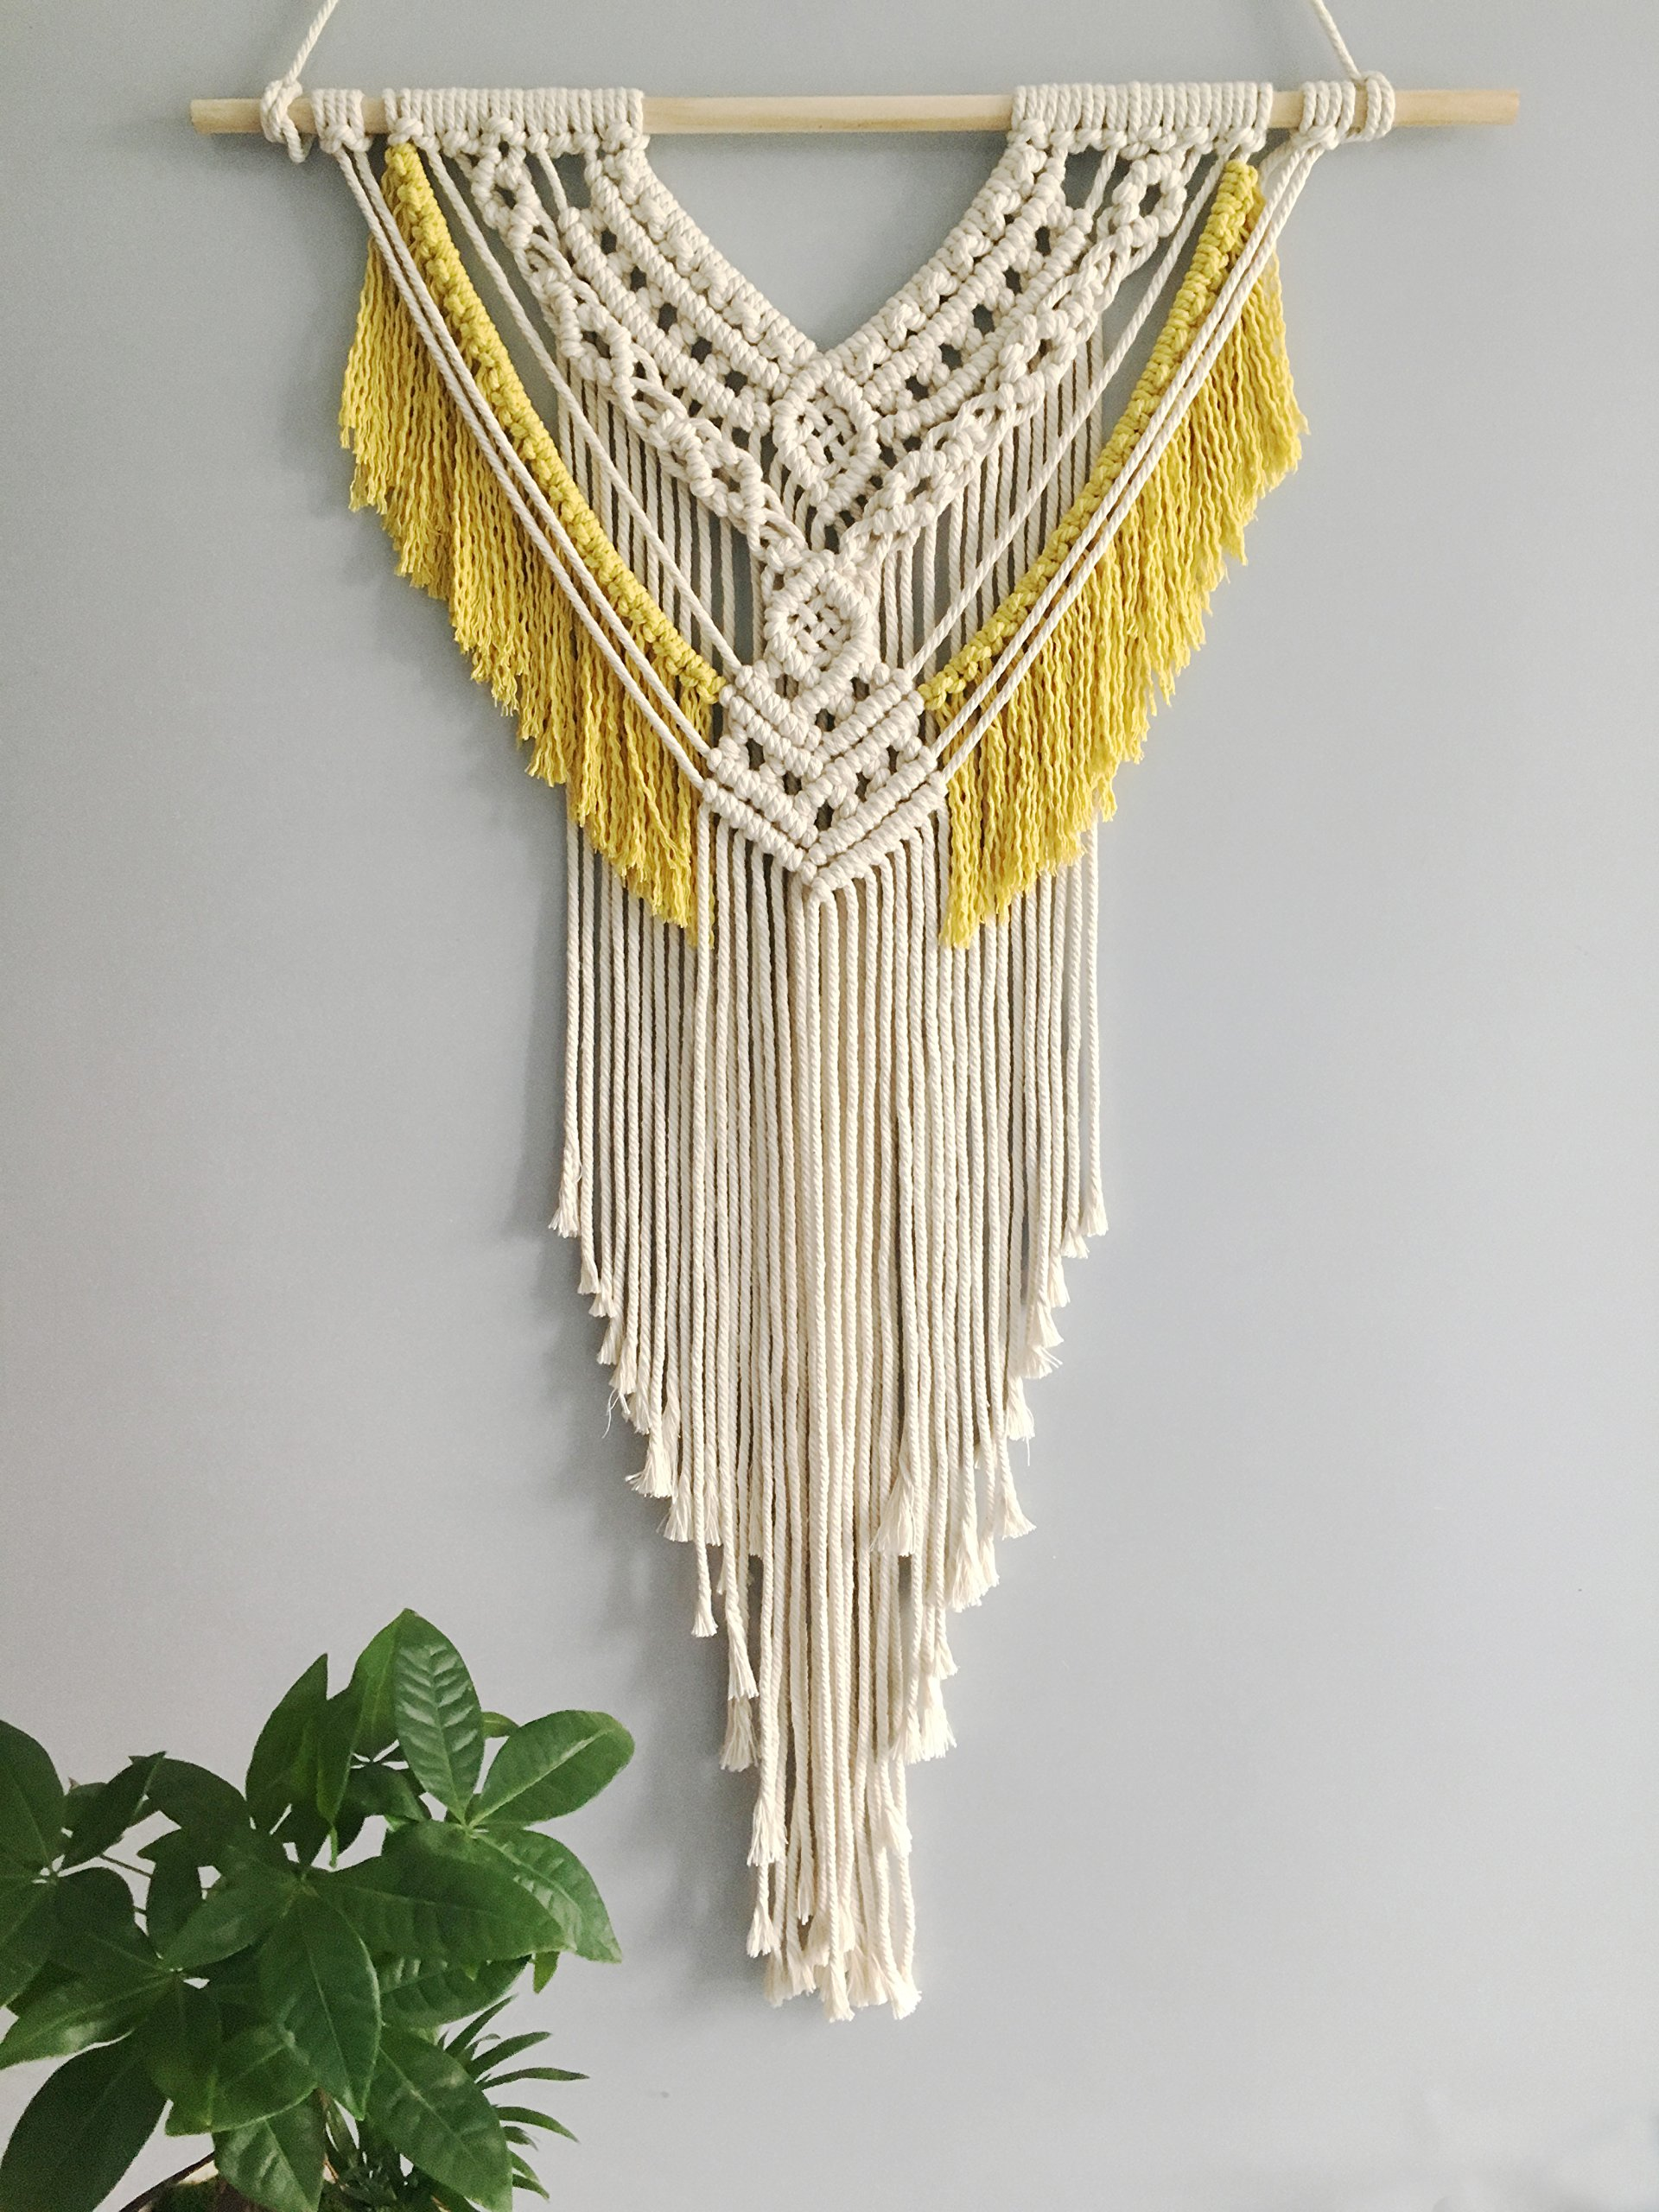 Youngeast 100% Handmade Boho Macrame Wall Hanging Home Décor, Yellow&Beige